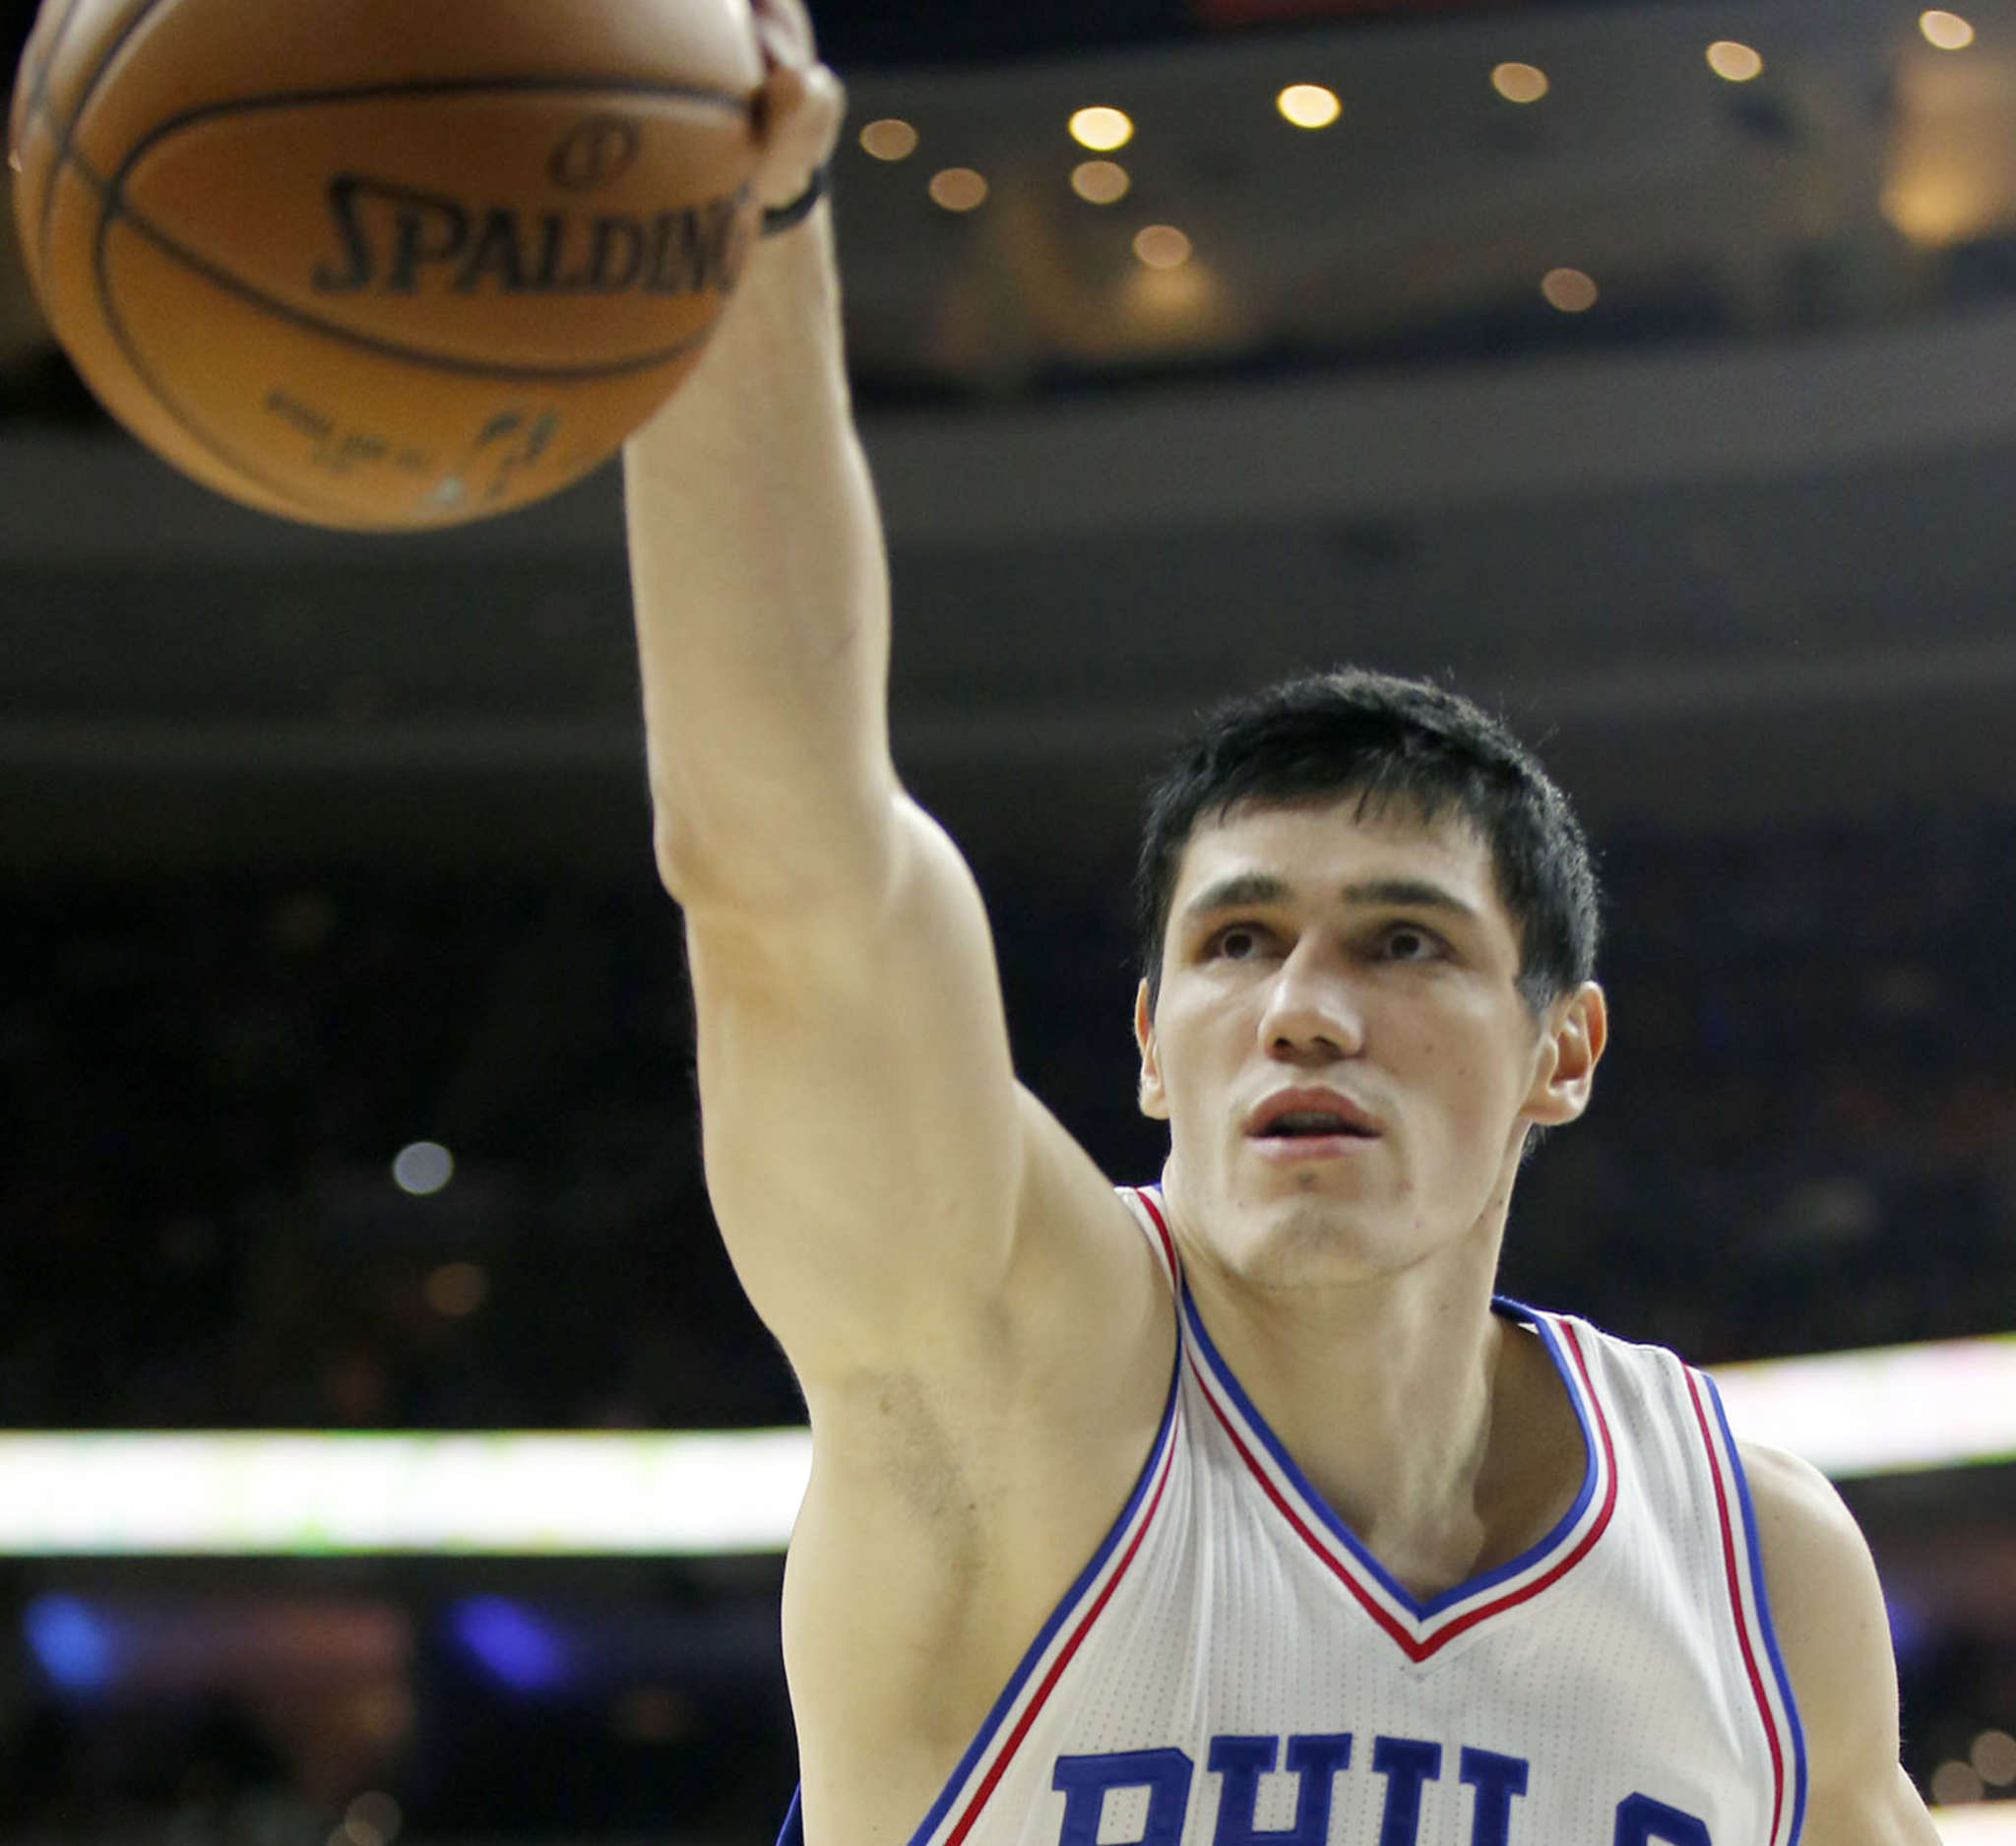 Sixers forward Ersan Ilyasova is a good complement on the court with budding star Joel Embiid, and also plays well with other members of the team.